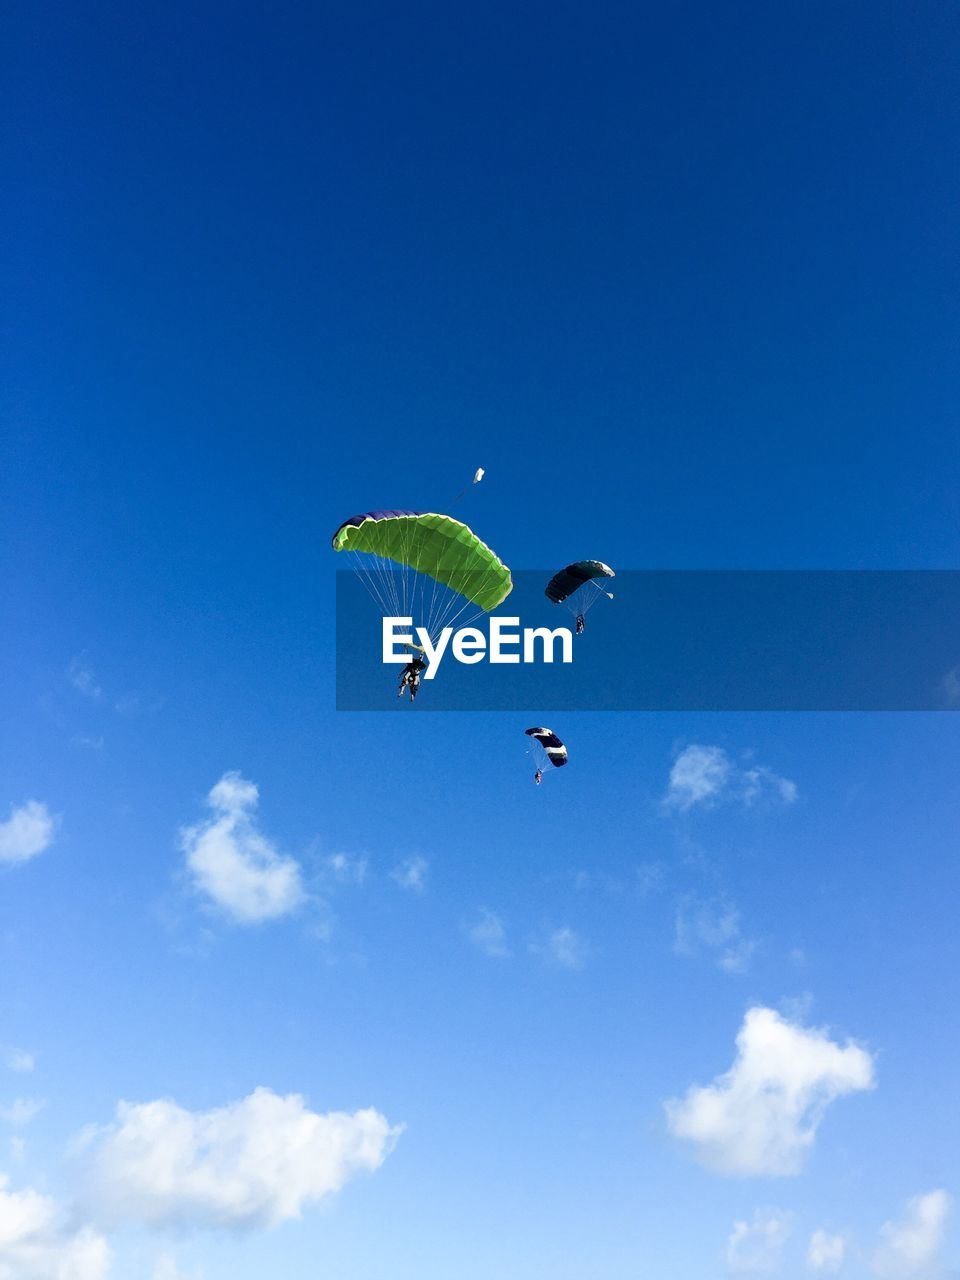 adventure, extreme sports, sky, flying, unrecognizable person, low angle view, sport, parachute, paragliding, mid-air, real people, leisure activity, blue, day, cloud - sky, lifestyles, nature, joy, two people, freedom, outdoors, skydiving, parasailing